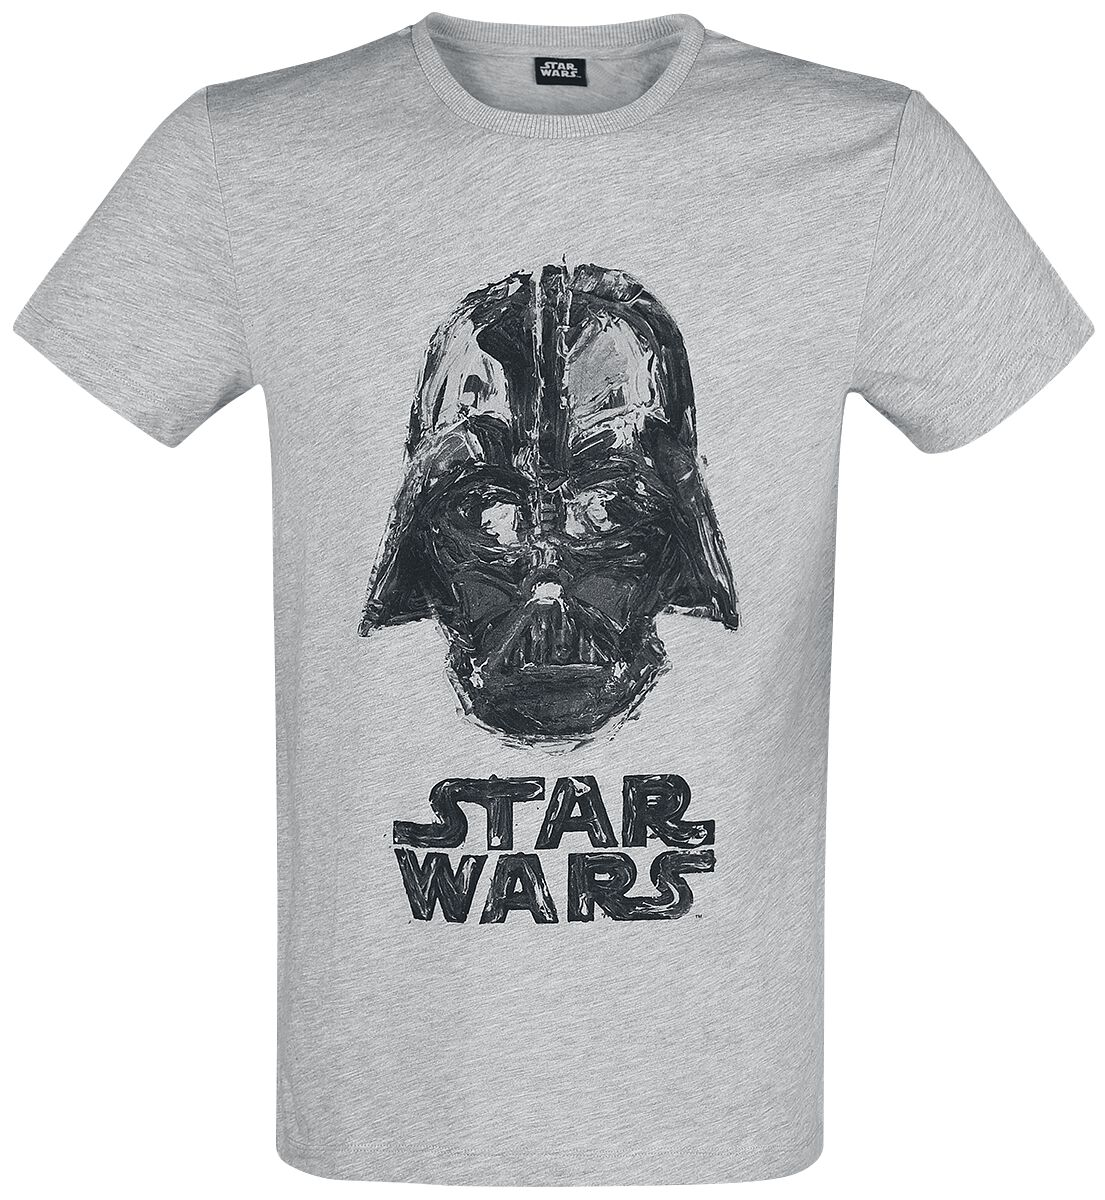 Image of   Star Wars Darth Vader T-Shirt blandet lys grå